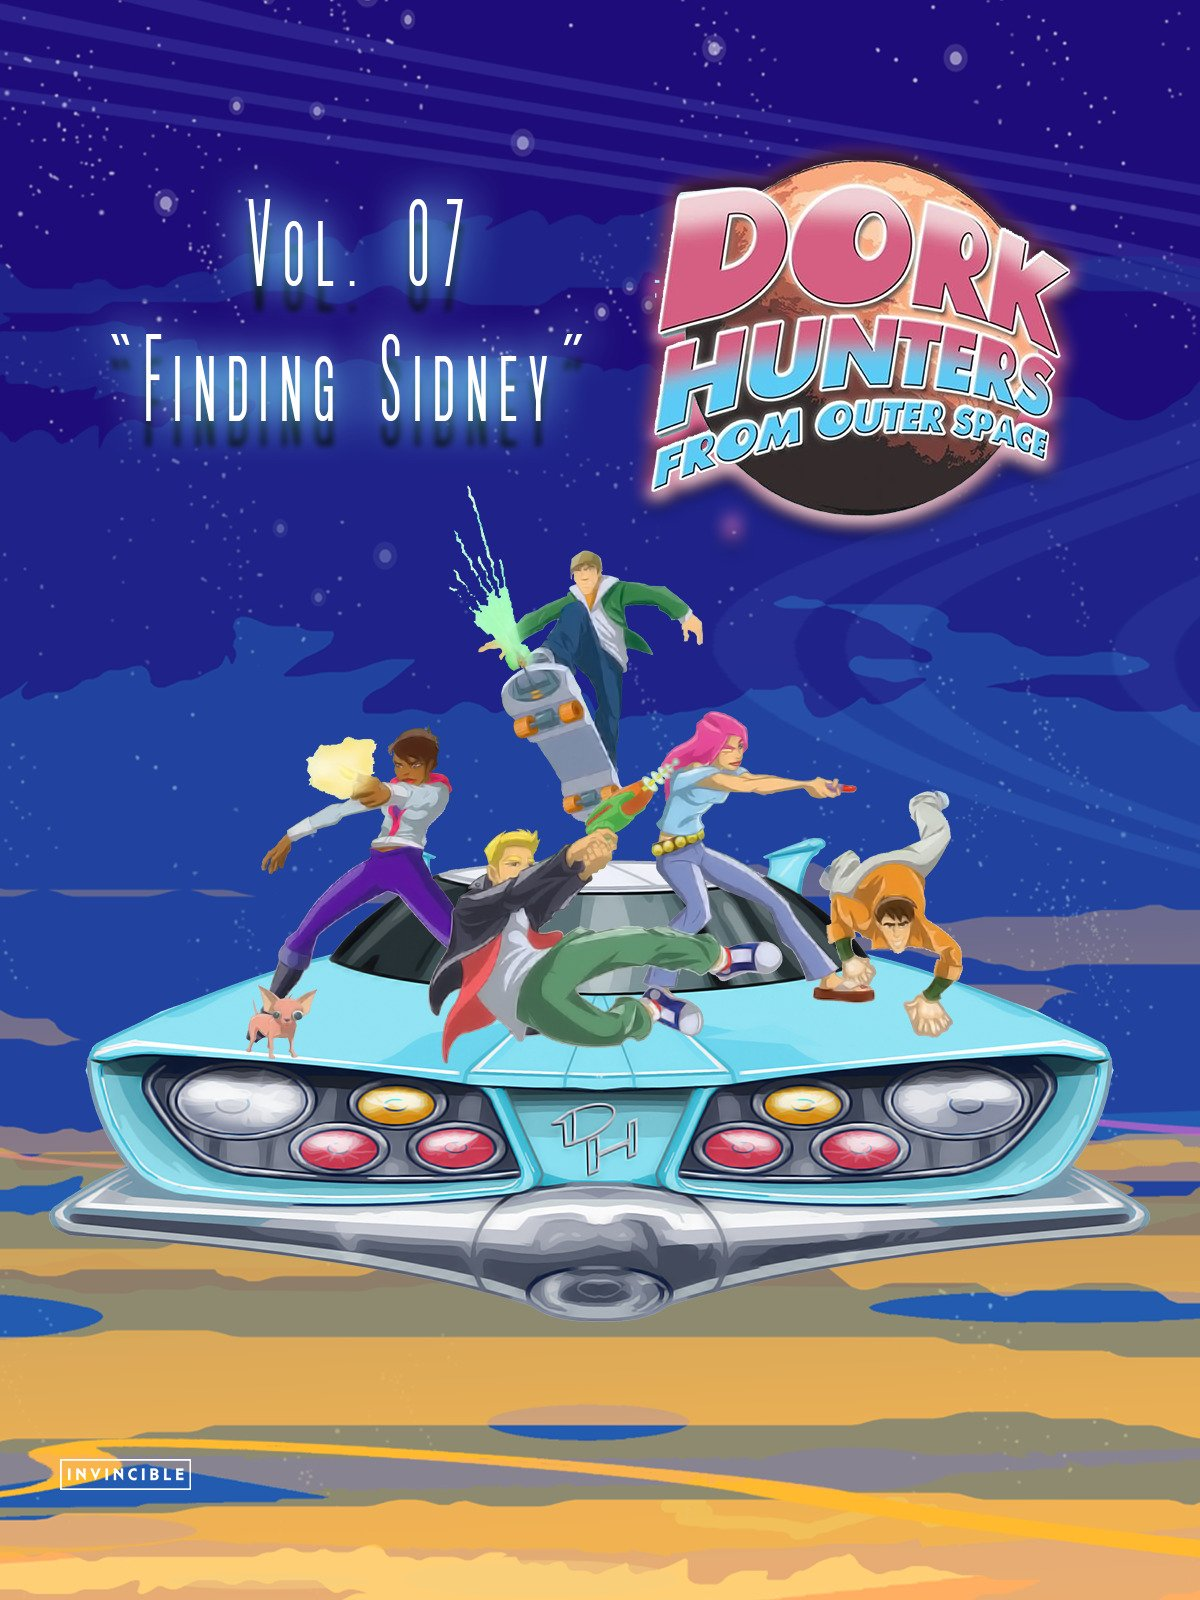 "Dork Hunters From Outer Space Vol. 07""Finding Sidney"""